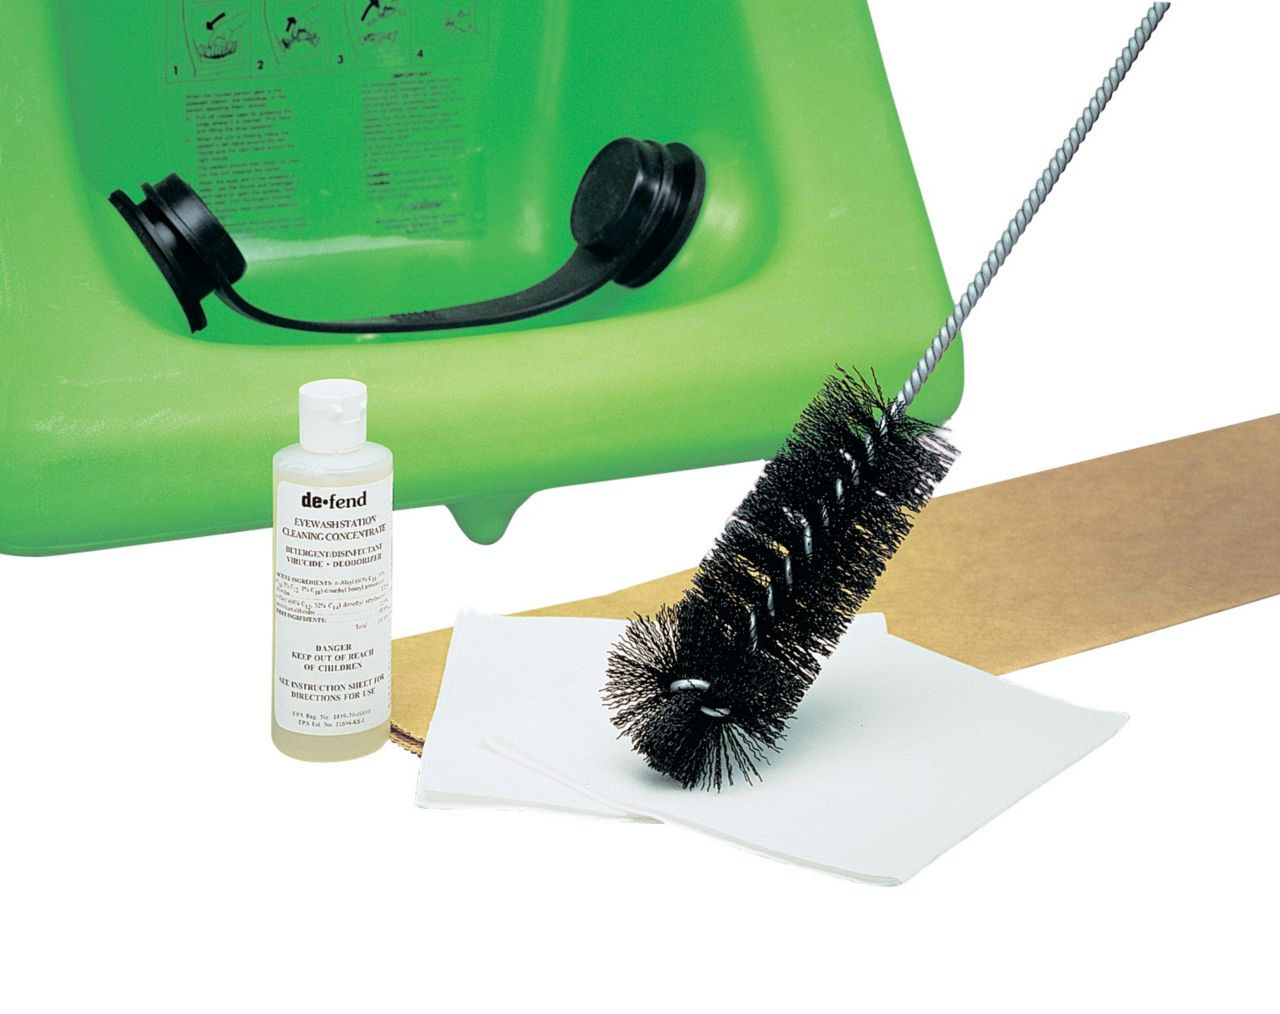 Honeywell Eyewash Cleaning Kit